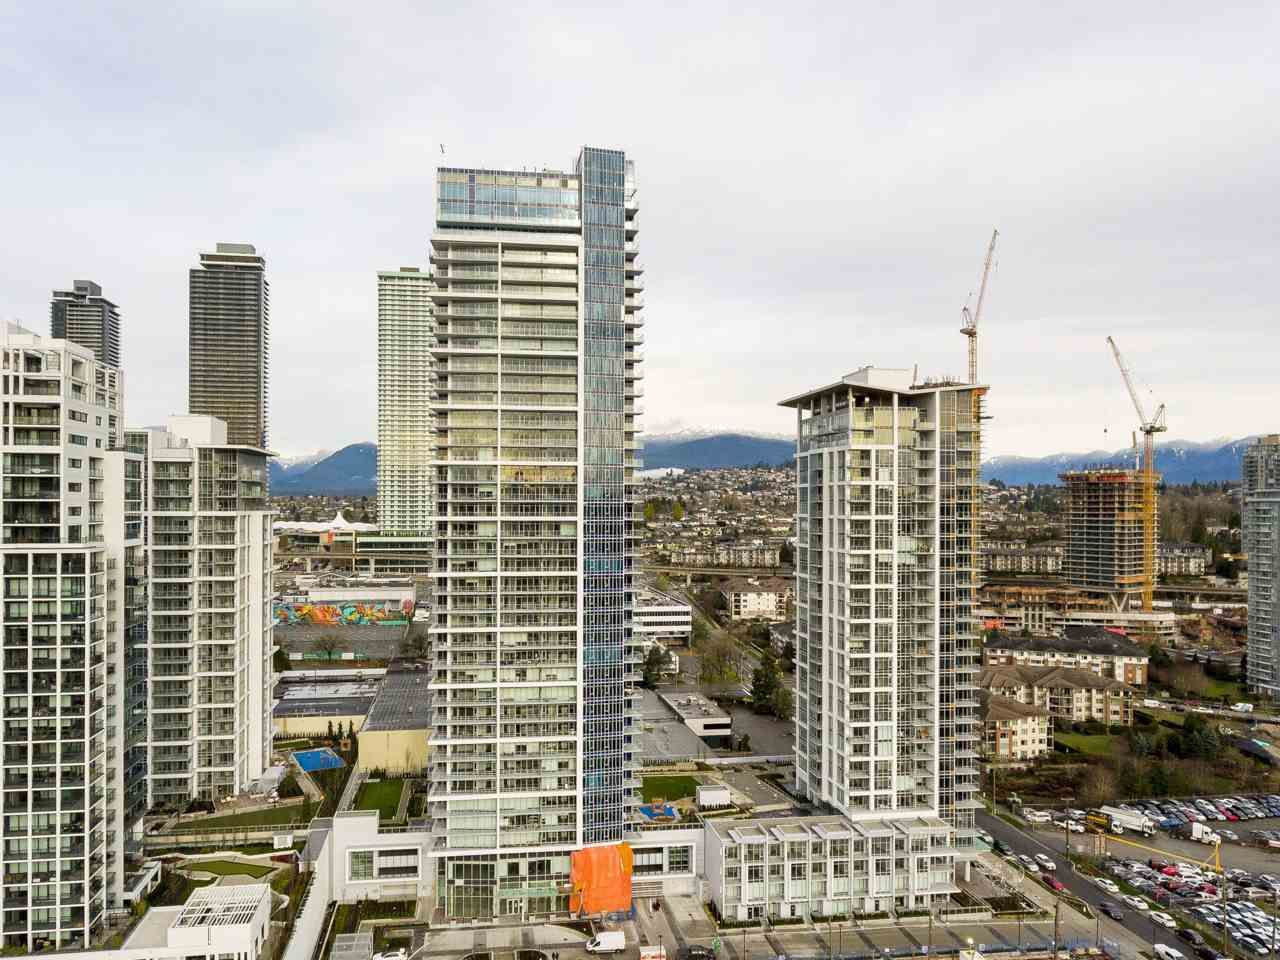 """Main Photo: 903 2311 BETA Avenue in Burnaby: Brentwood Park Condo for sale in """"WATERFALL - LUMINA"""" (Burnaby North)  : MLS®# R2541071"""